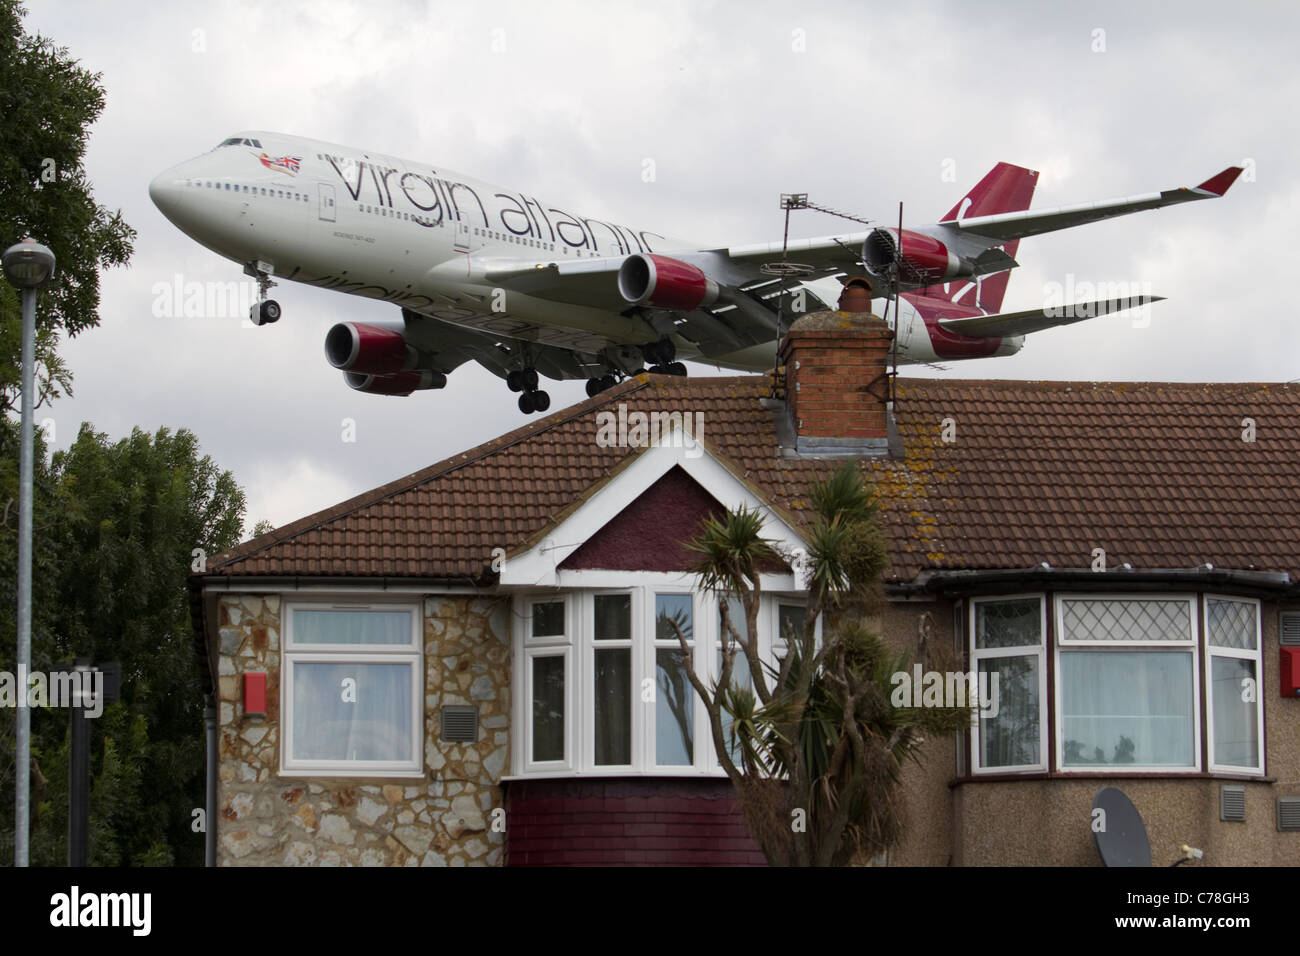 Les aéronefs volant à basse altitude l'approche de l'aéroport Heathrow de Virgin Atlantic, Photo Stock